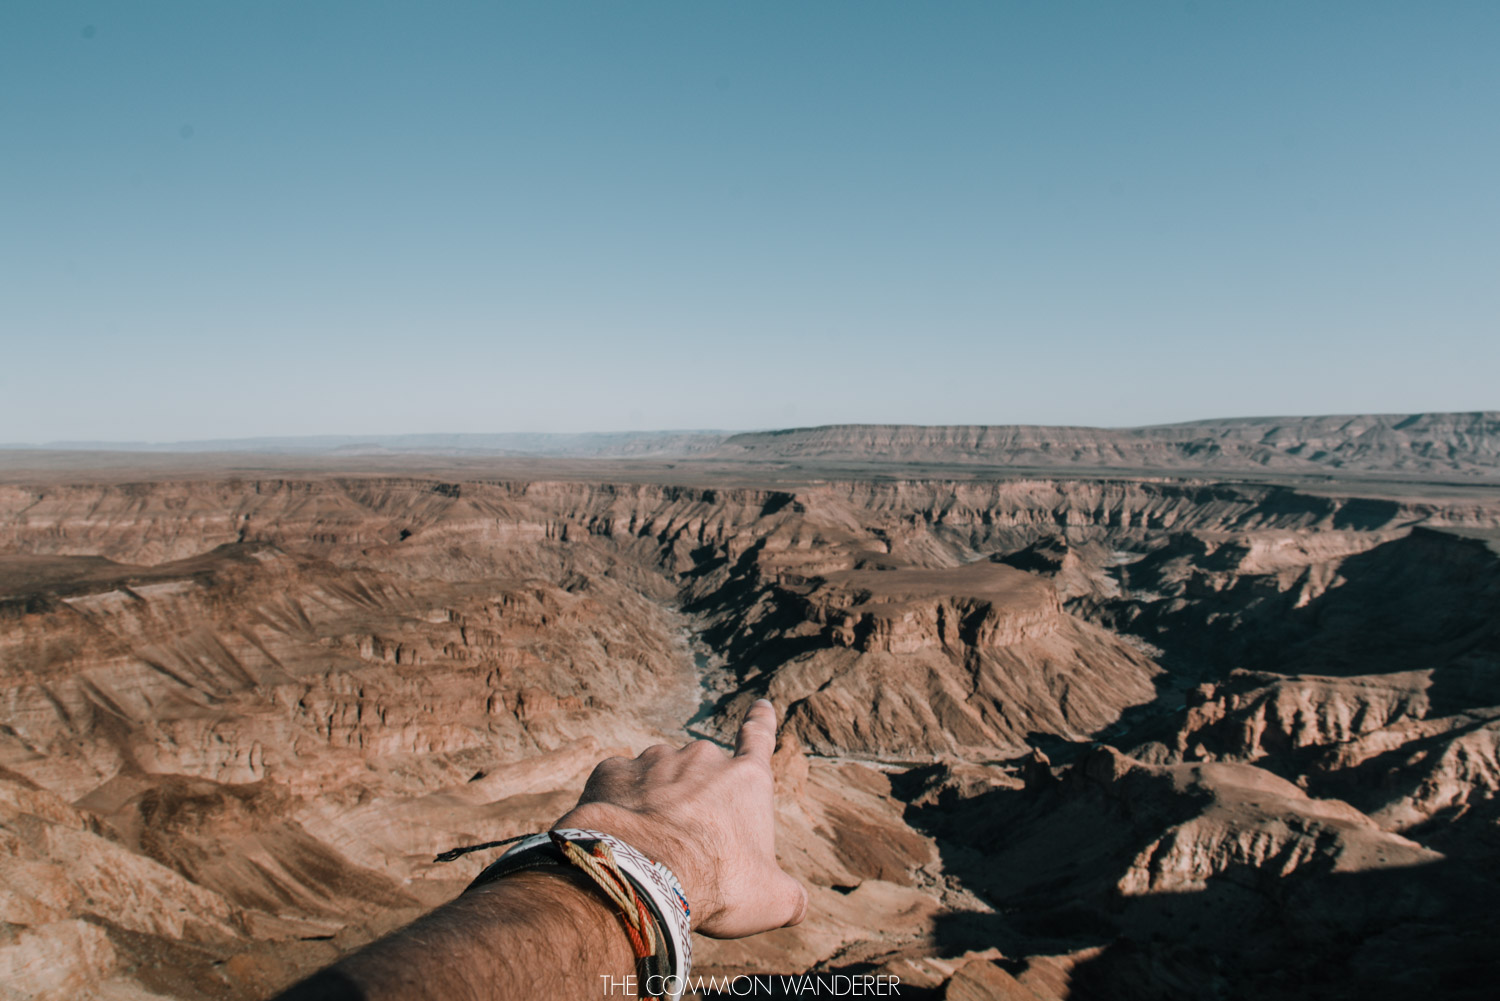 Looking out over the Fish River Canyon, Namibia - The Common Wanderer